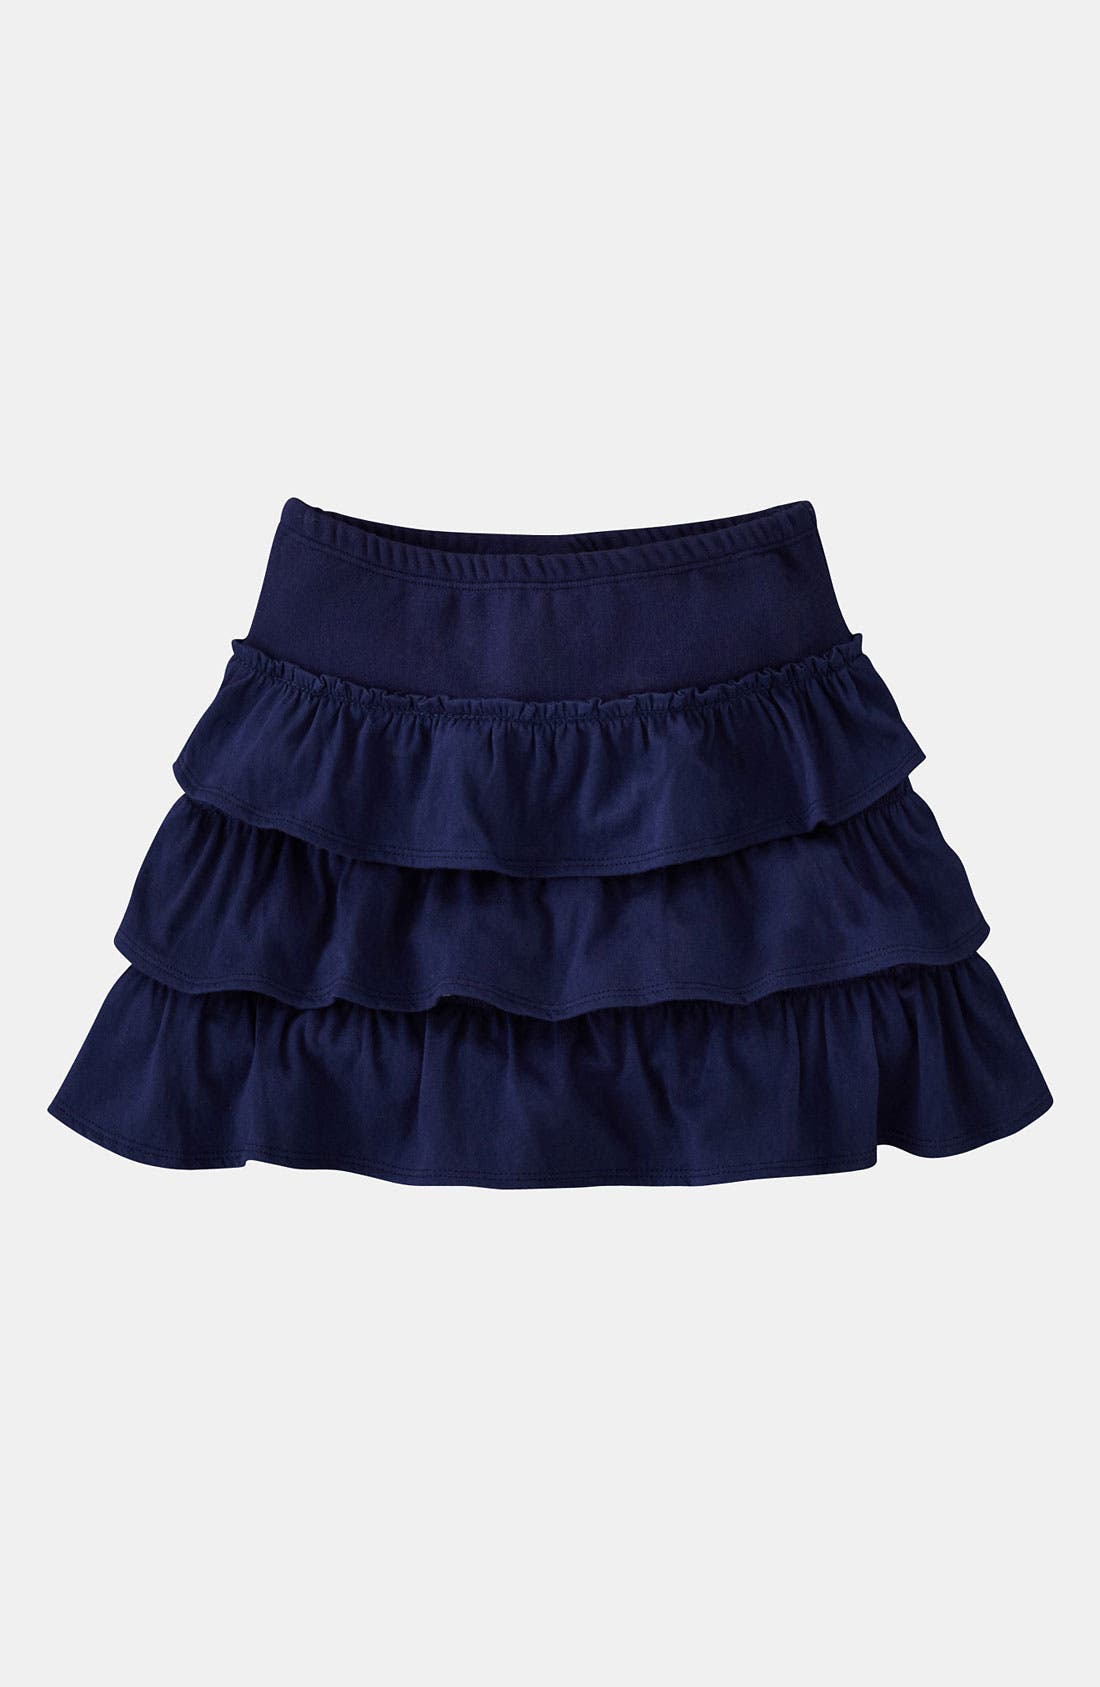 Main Image - Mini Boden Ruffle Jersey Skirt (Toddler)